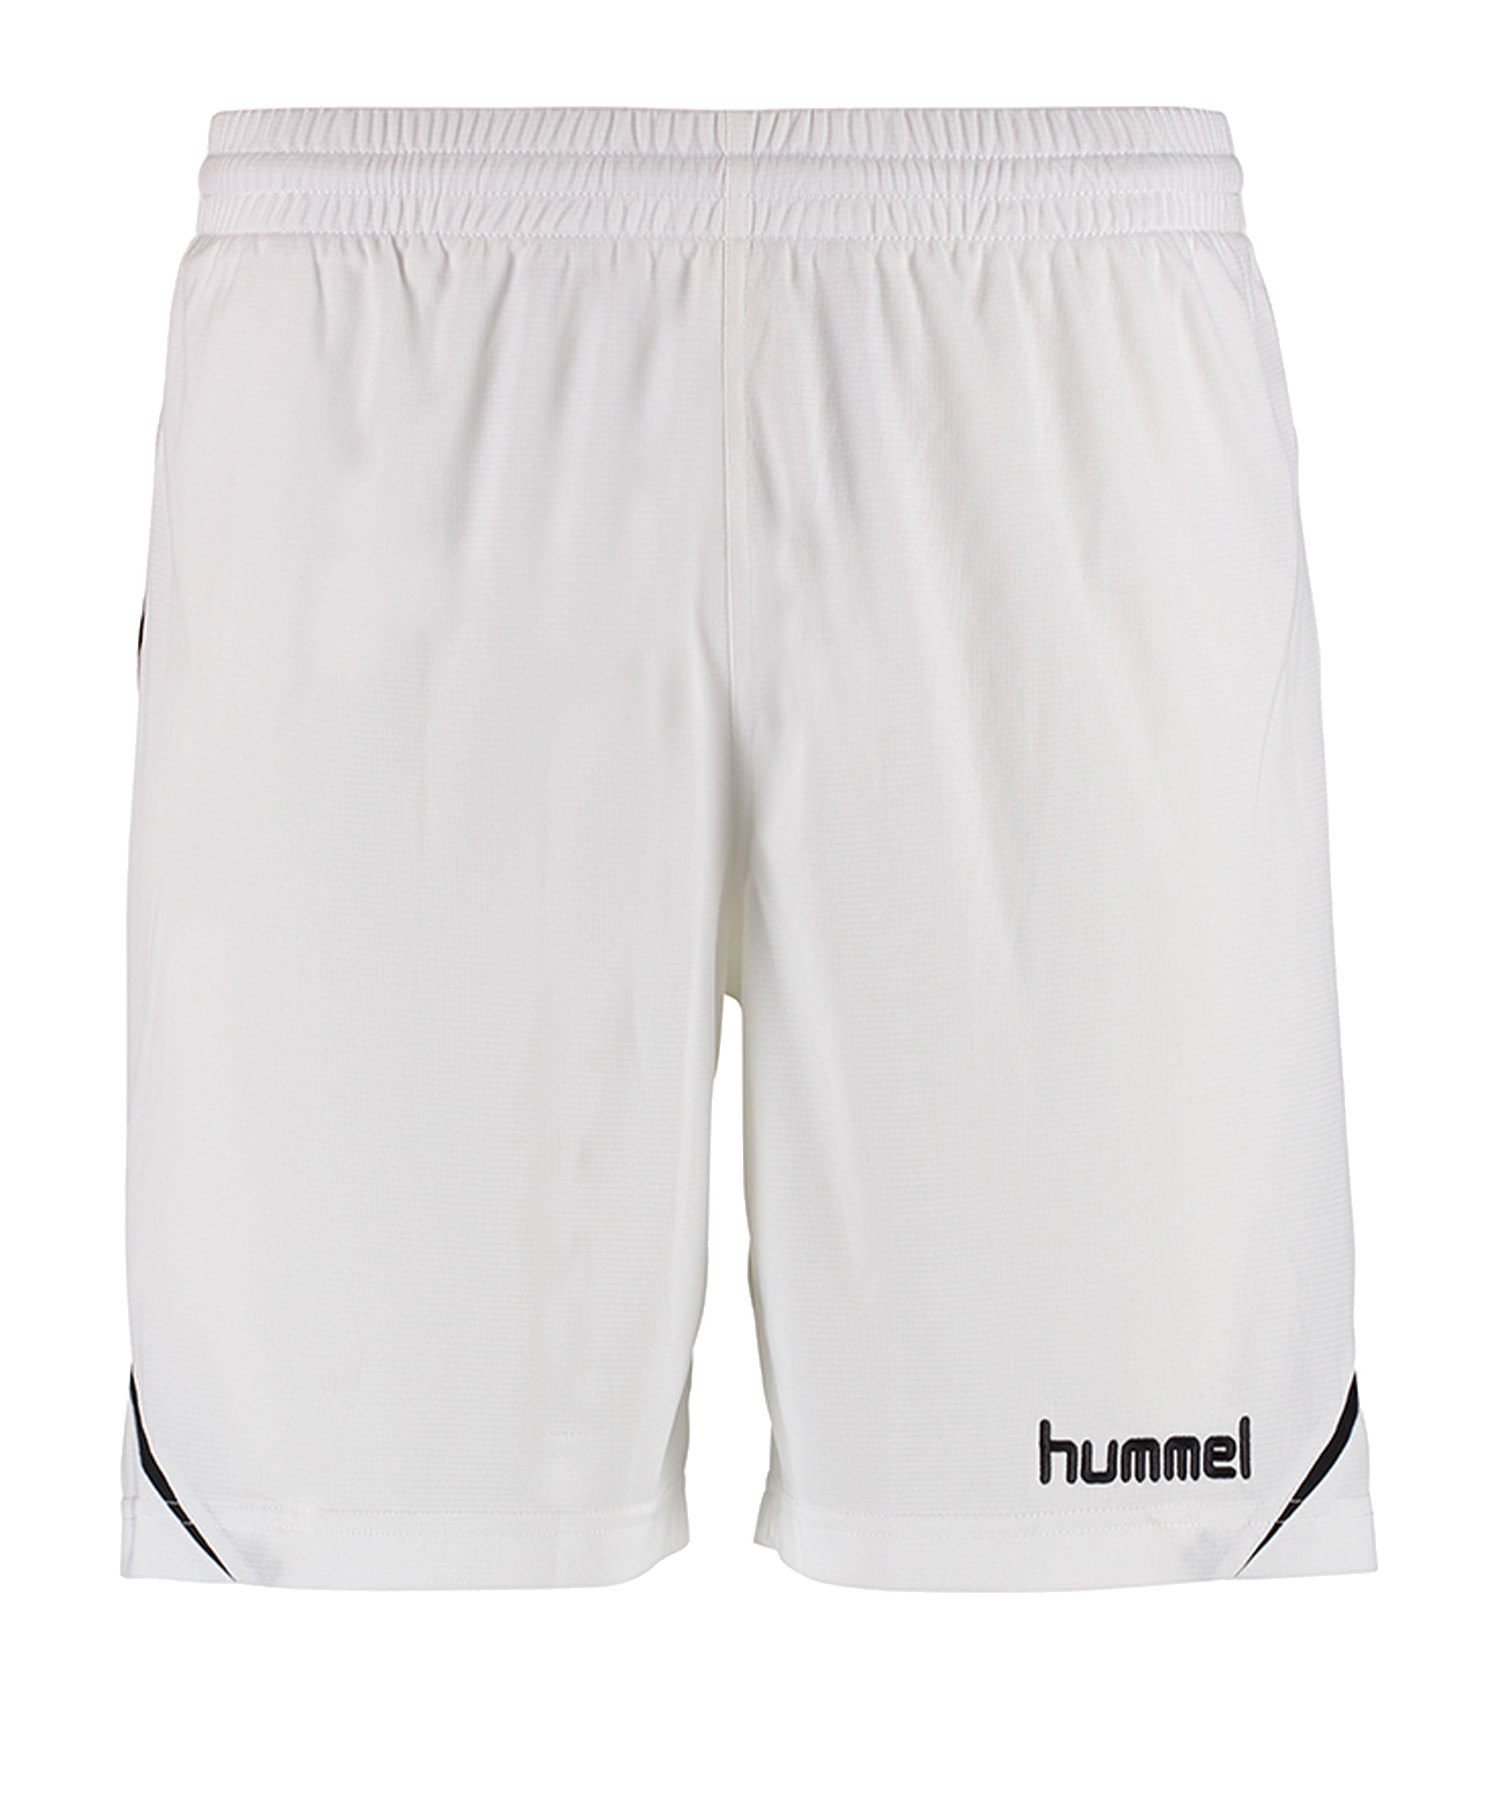 Hummel Authentic Charge Shorts Kids Weiss F9001 - Weiss